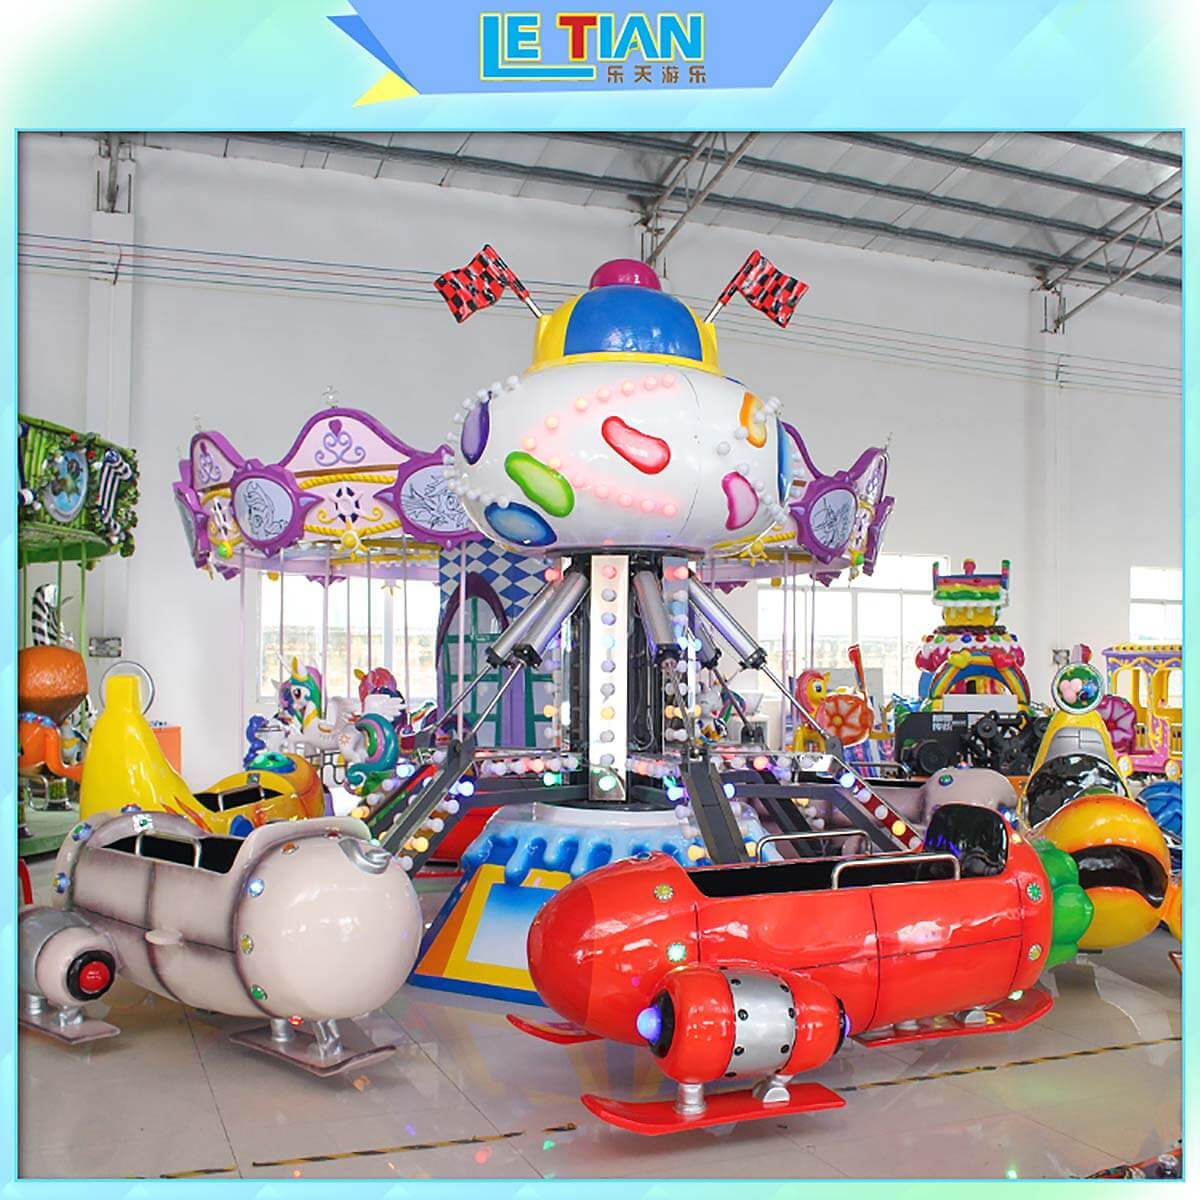 LETIAN amusing amusement equipment manufacturer park-2